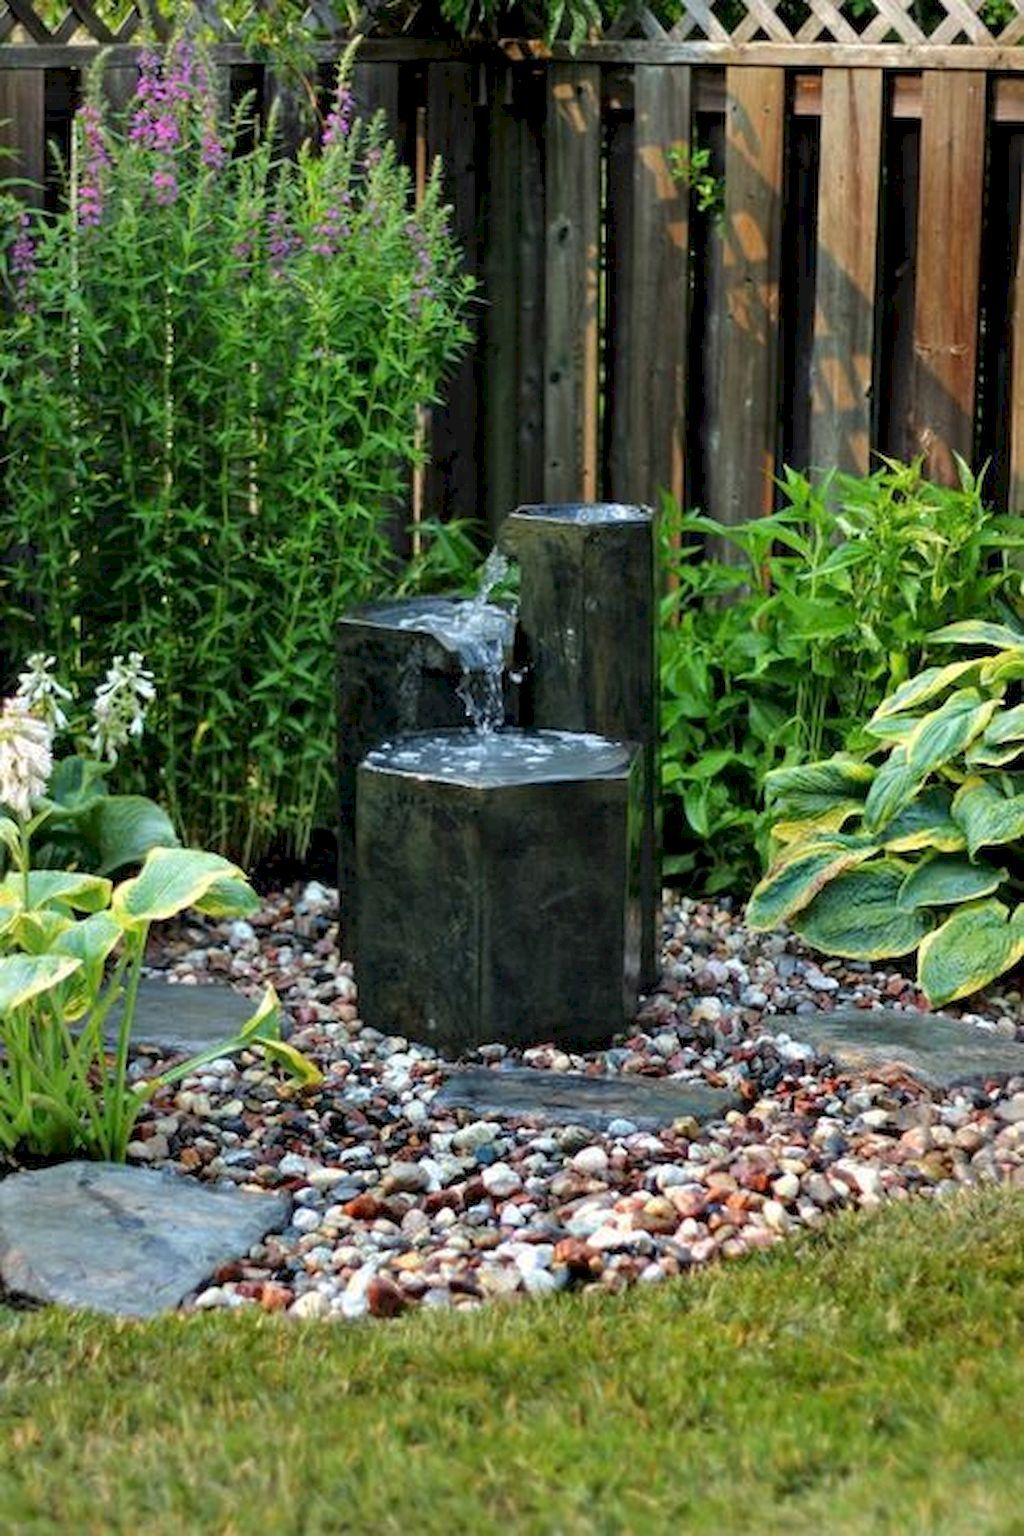 70 Unique Backyard Garden Water Feature Landscaping Ideas - homixover.com #waterfeatures